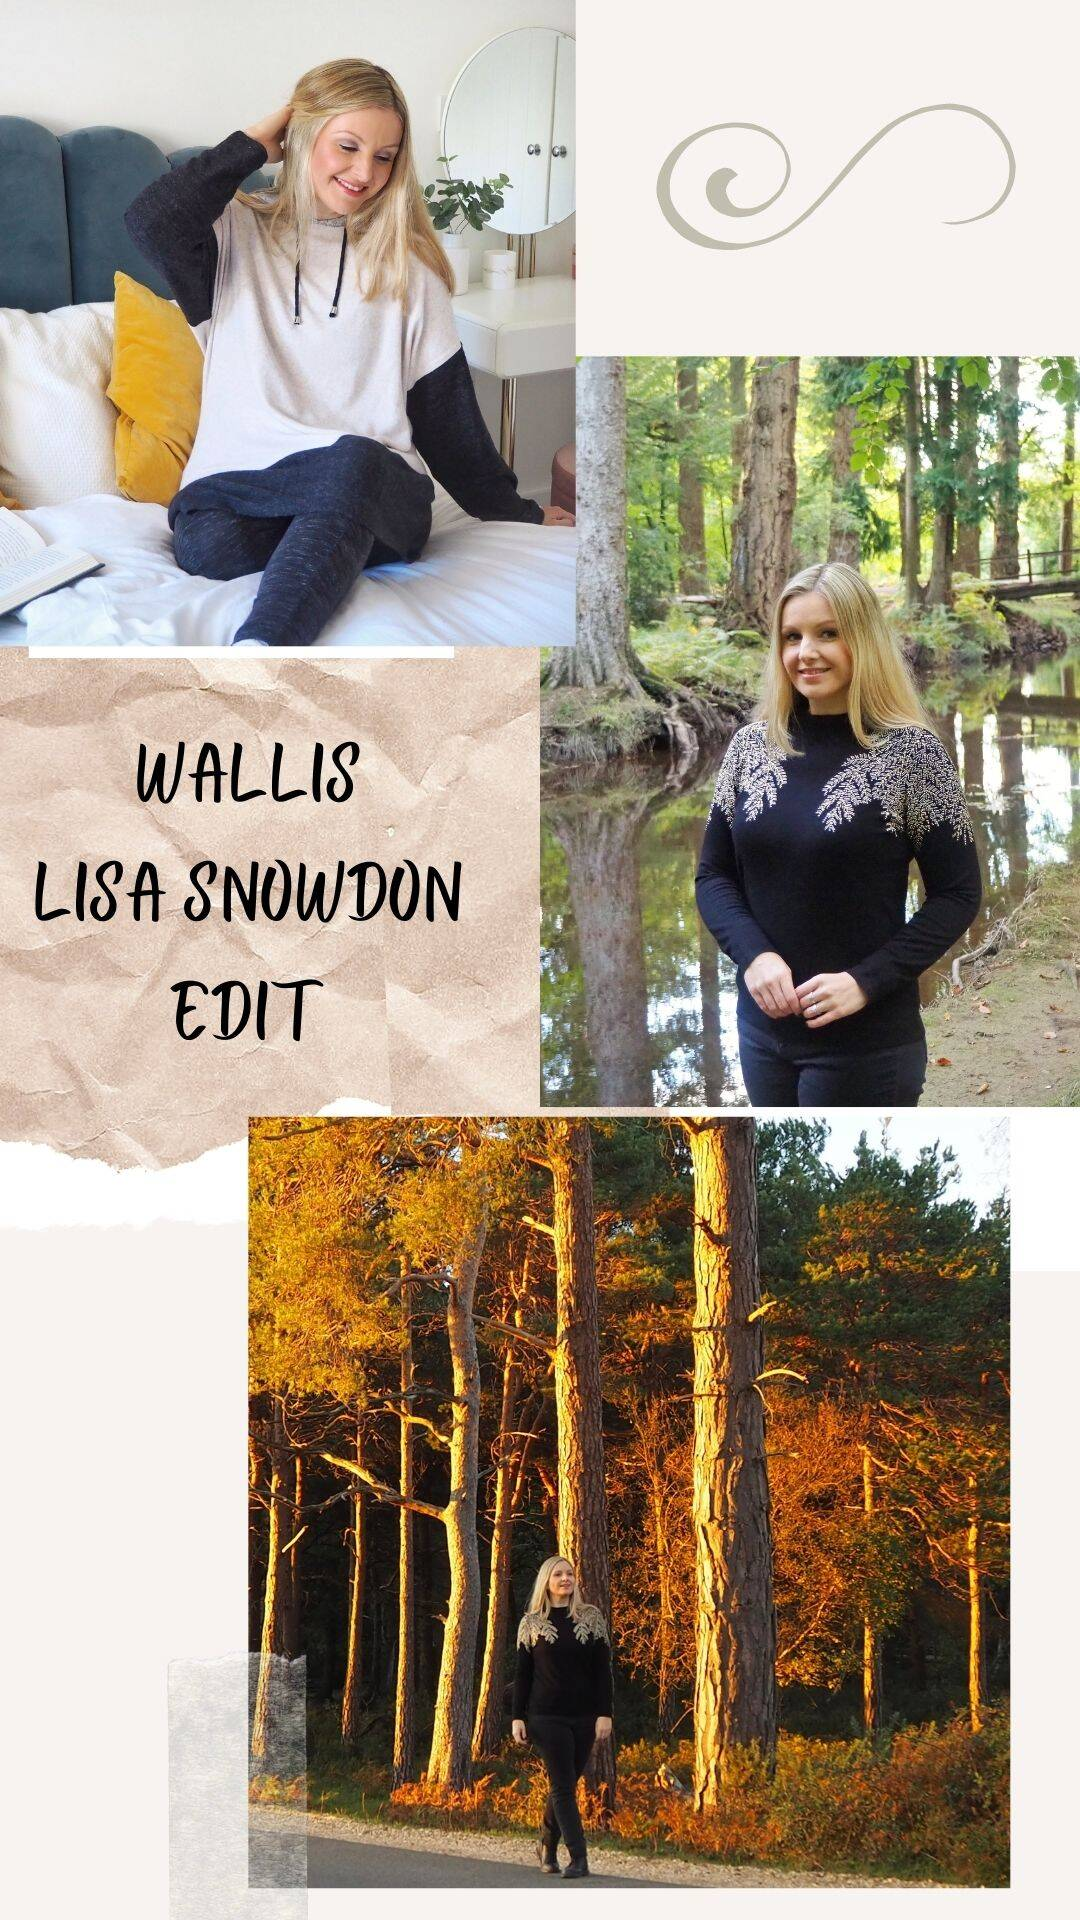 Wallis Lisa Snowdon Edit